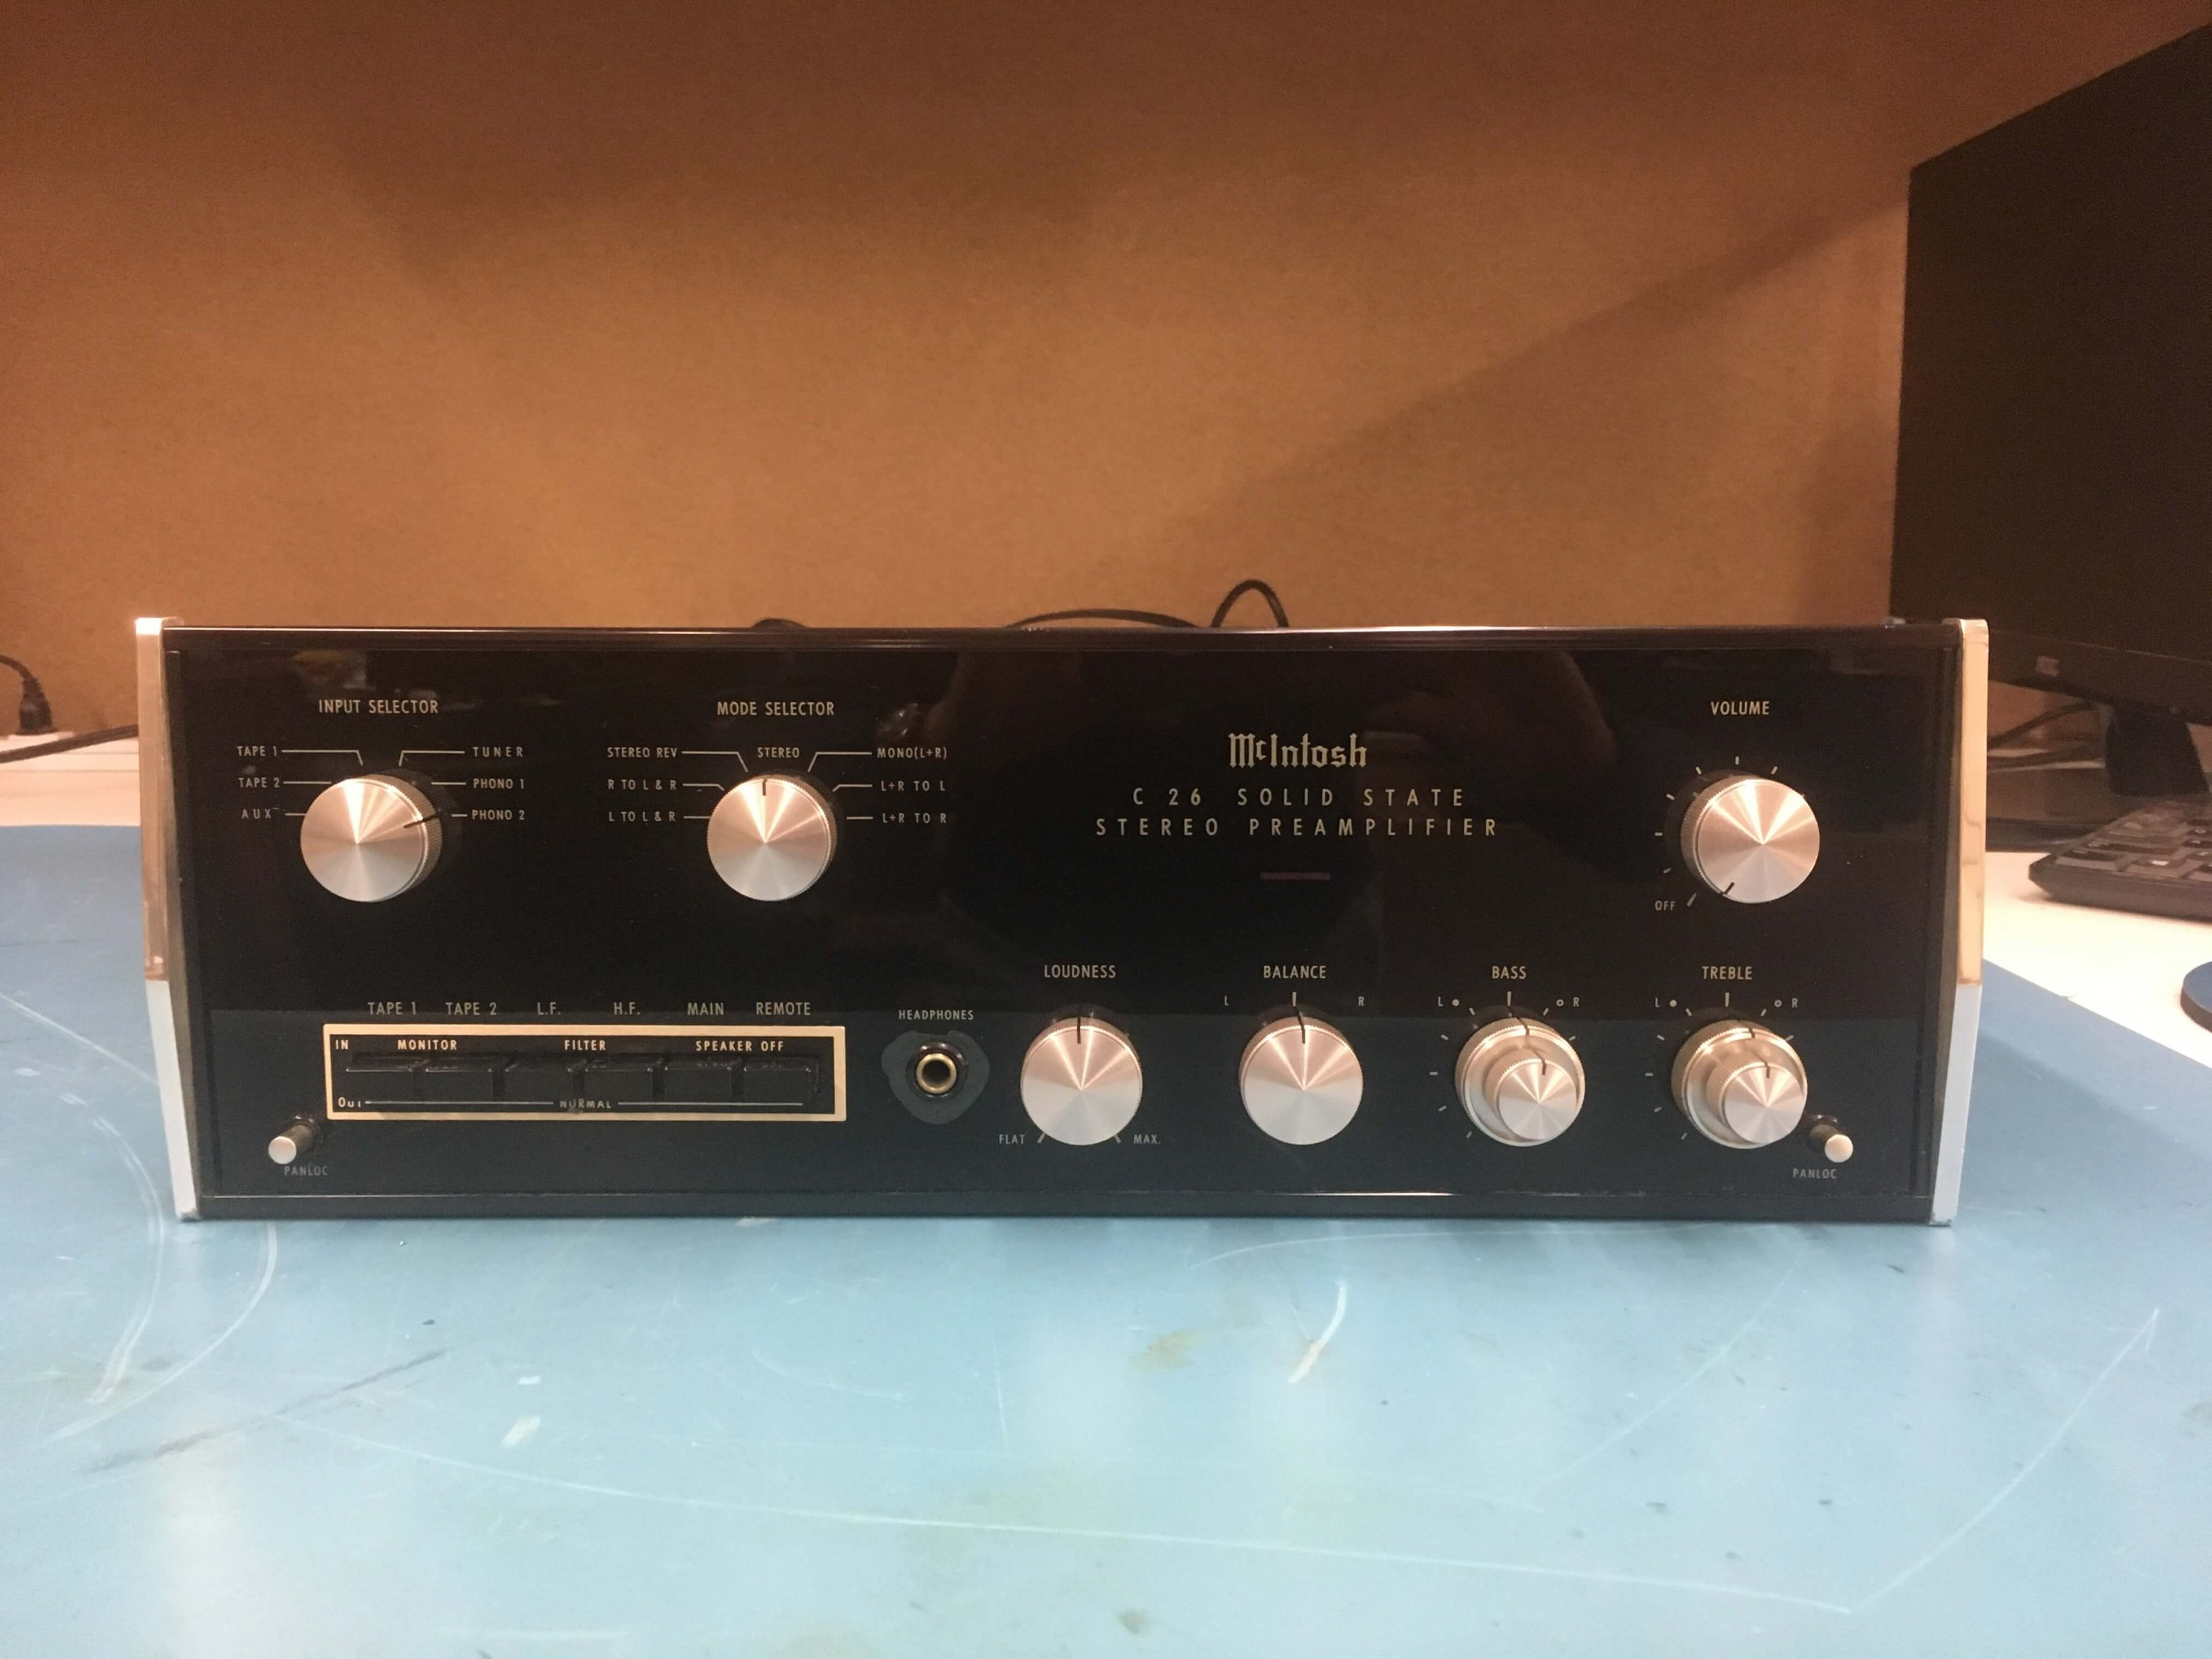 McIntosh C26 stereo preamplifier